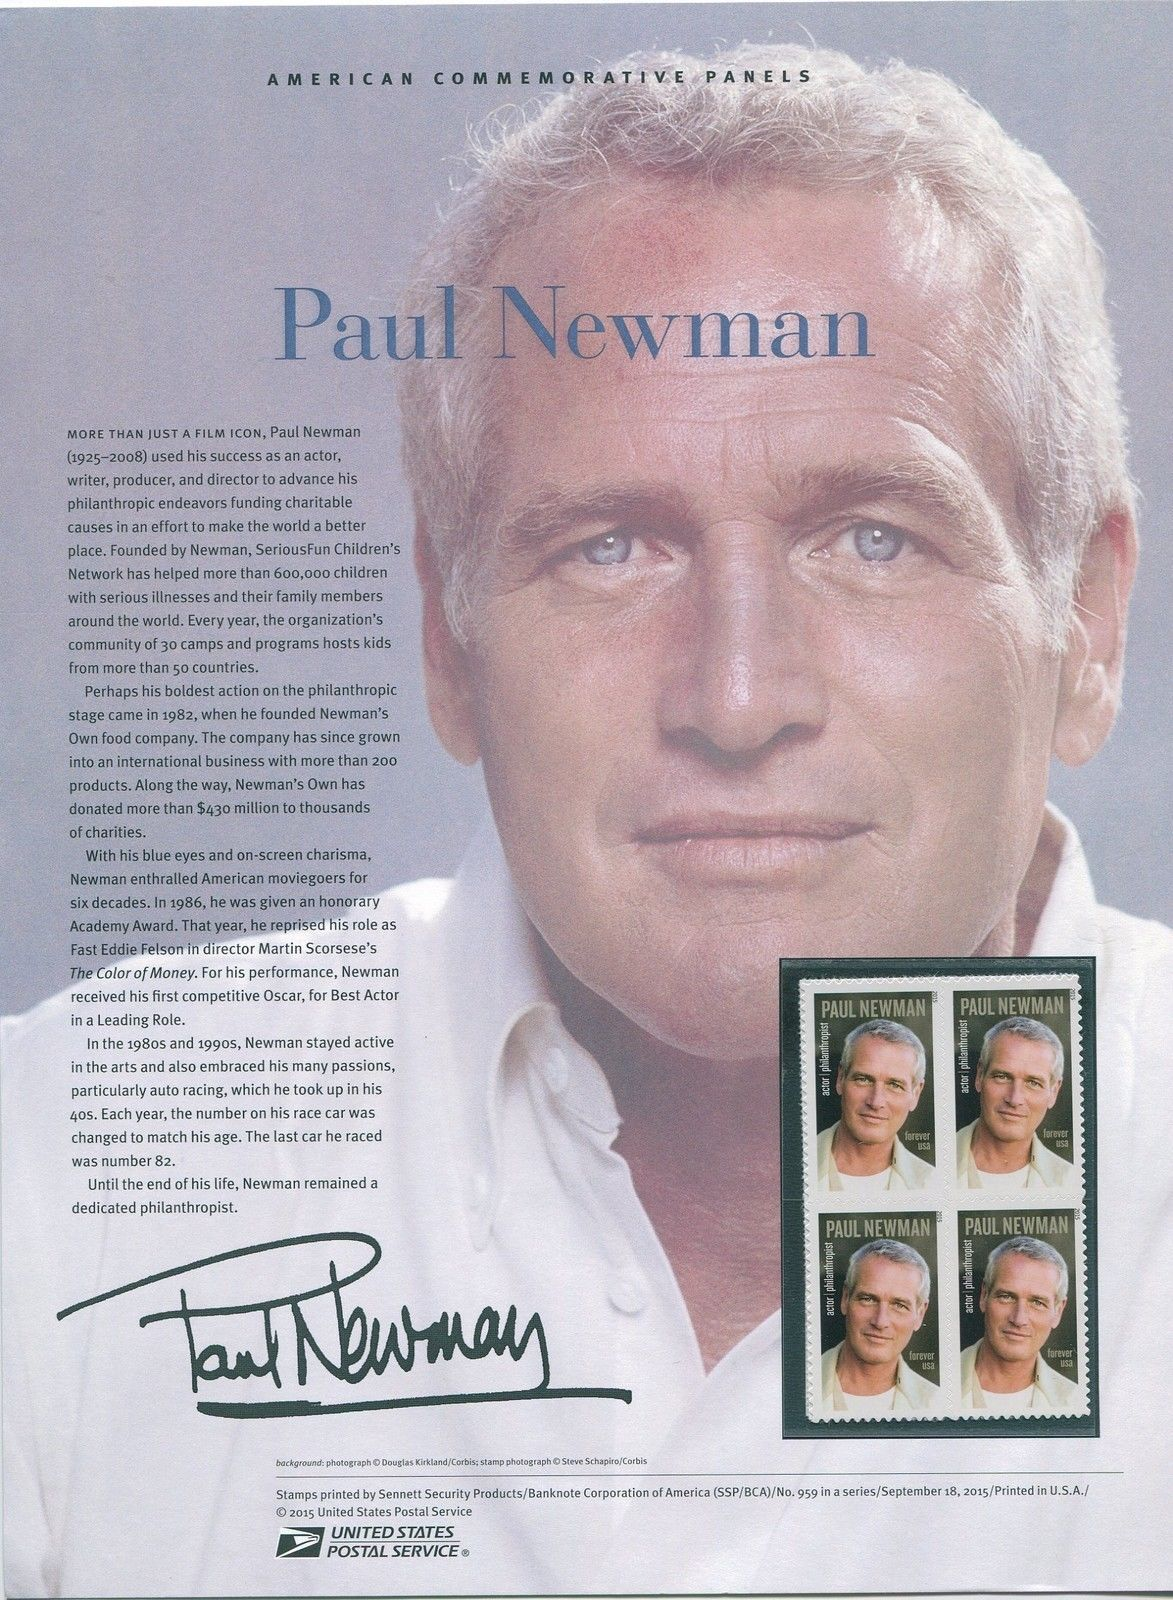 5020 Forever Paul Newman USPS 959 Commemorative Stamp Panel HipStamp